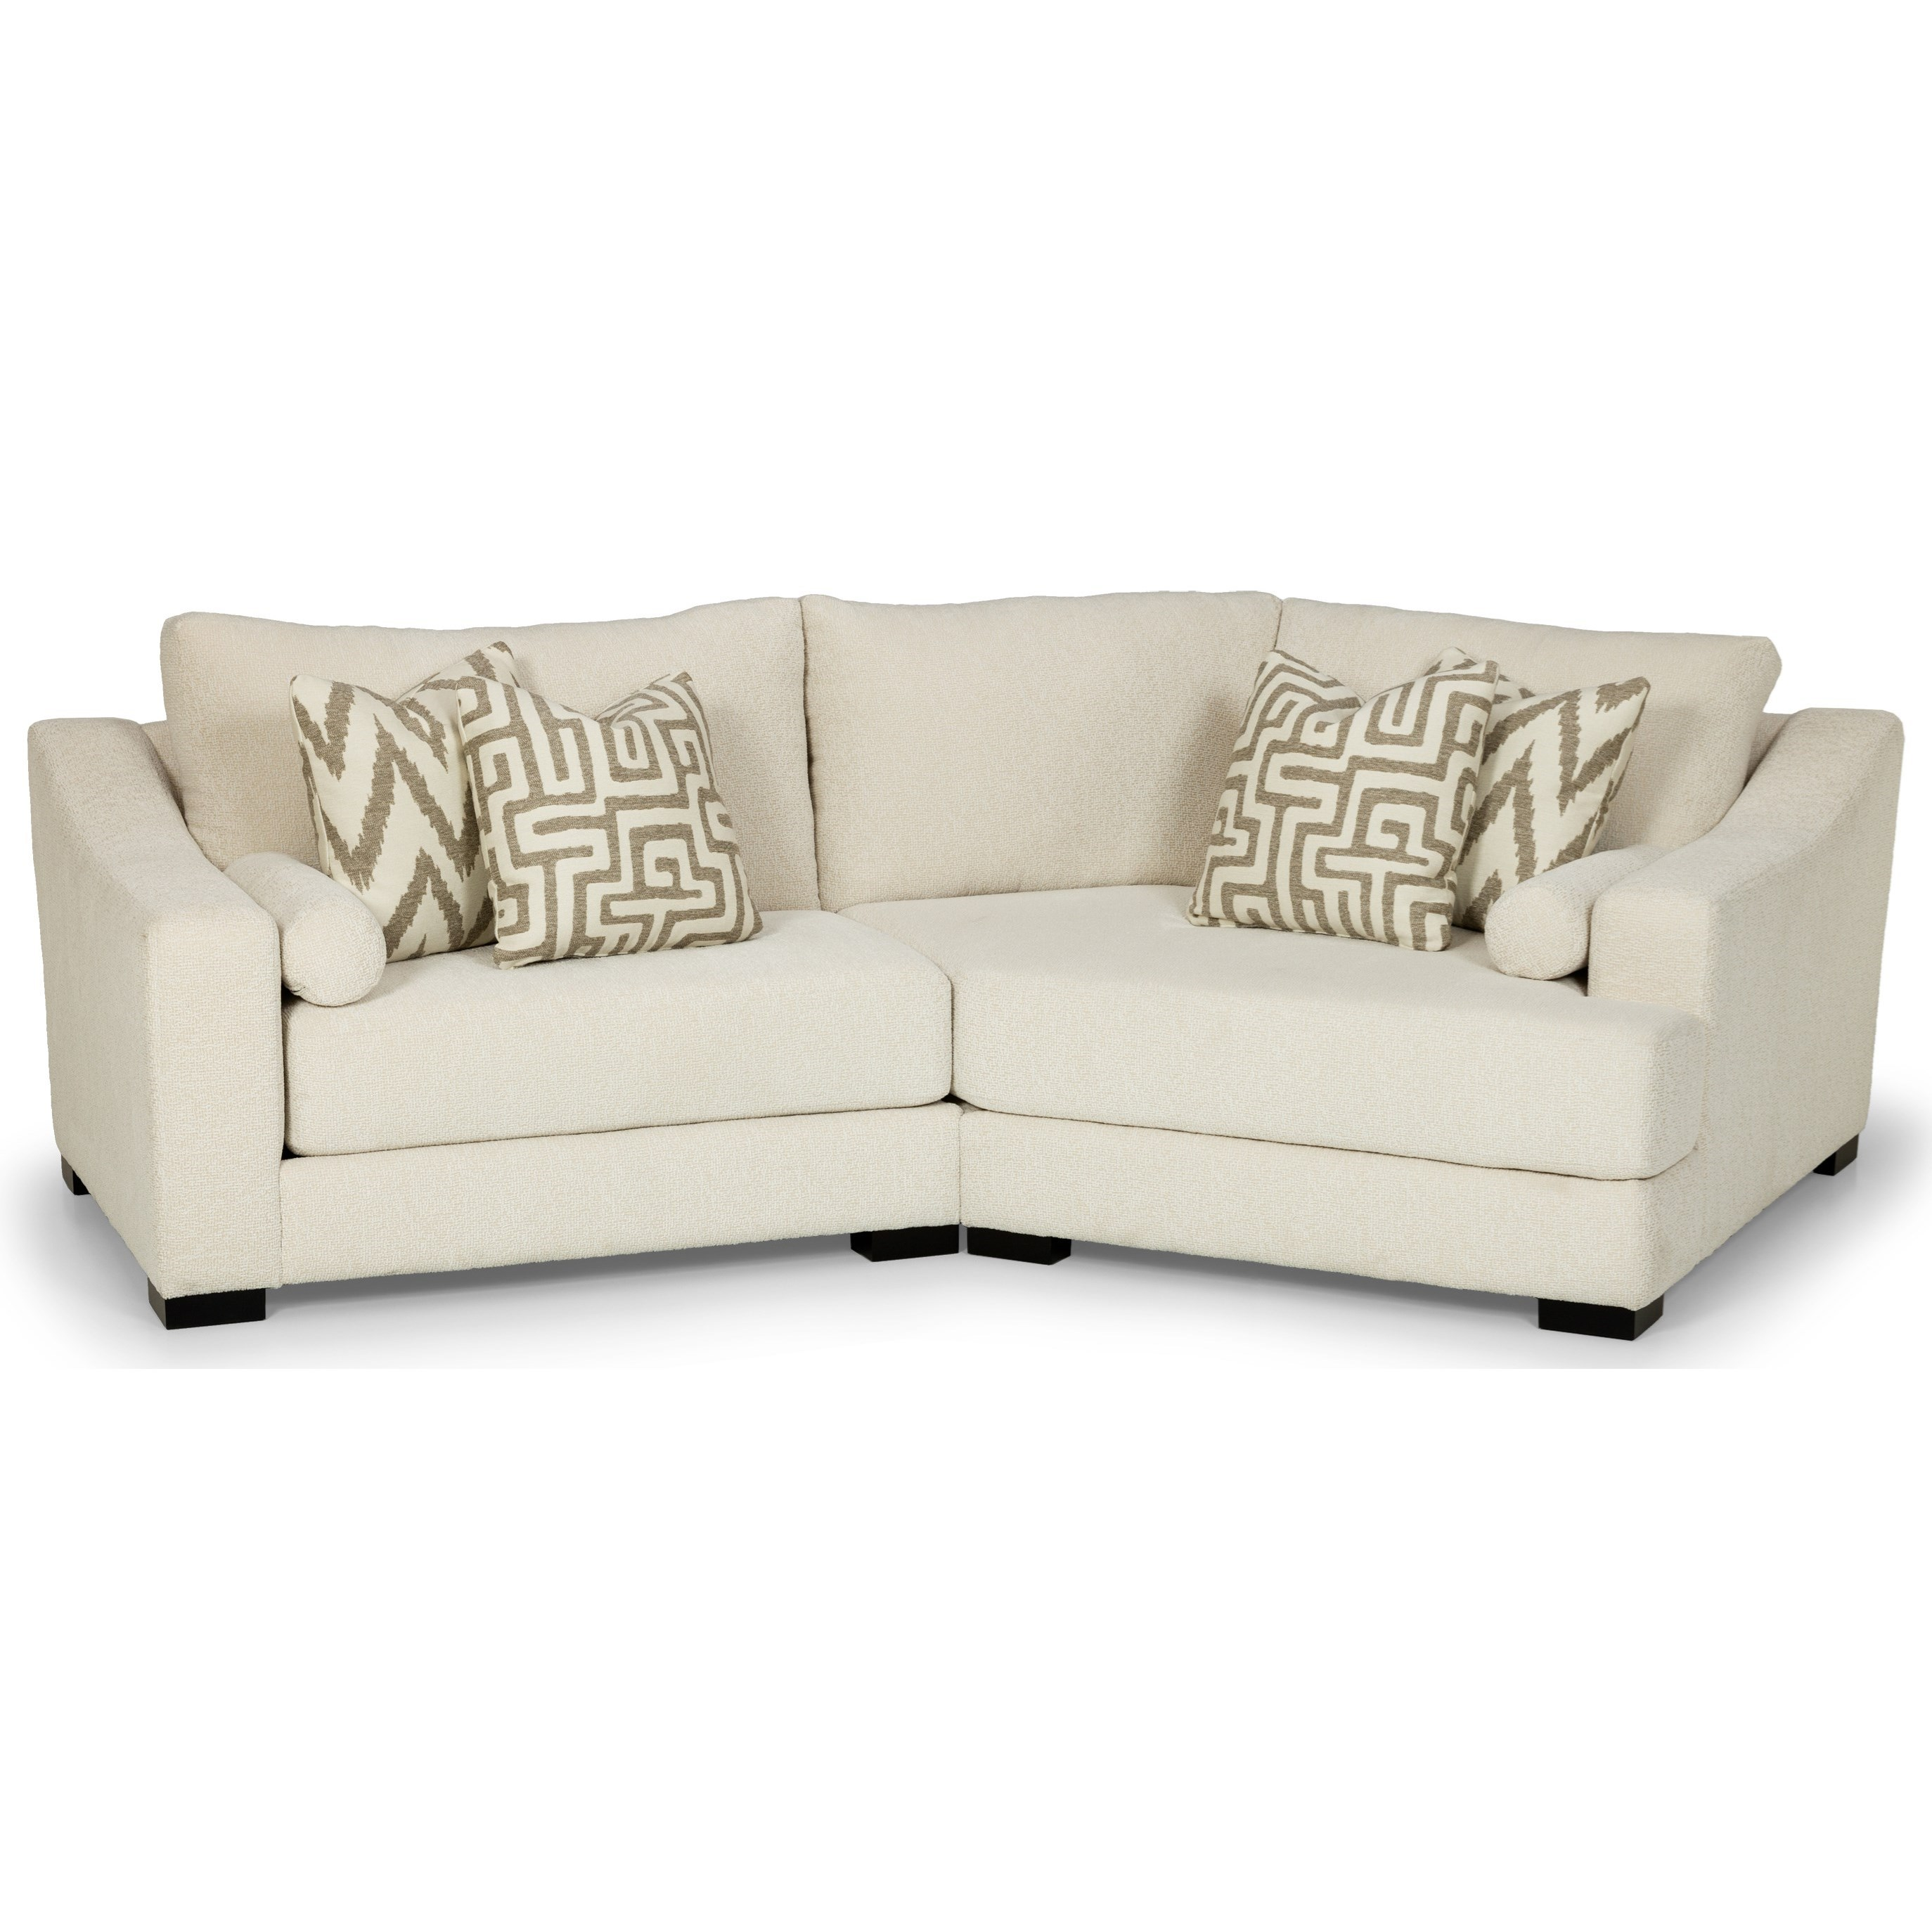 Stanton 424 Contemporary 2 Seat Modular Sofa With Right Oversized Cuddler Chair Wilson S Furniture Sectional Sofas